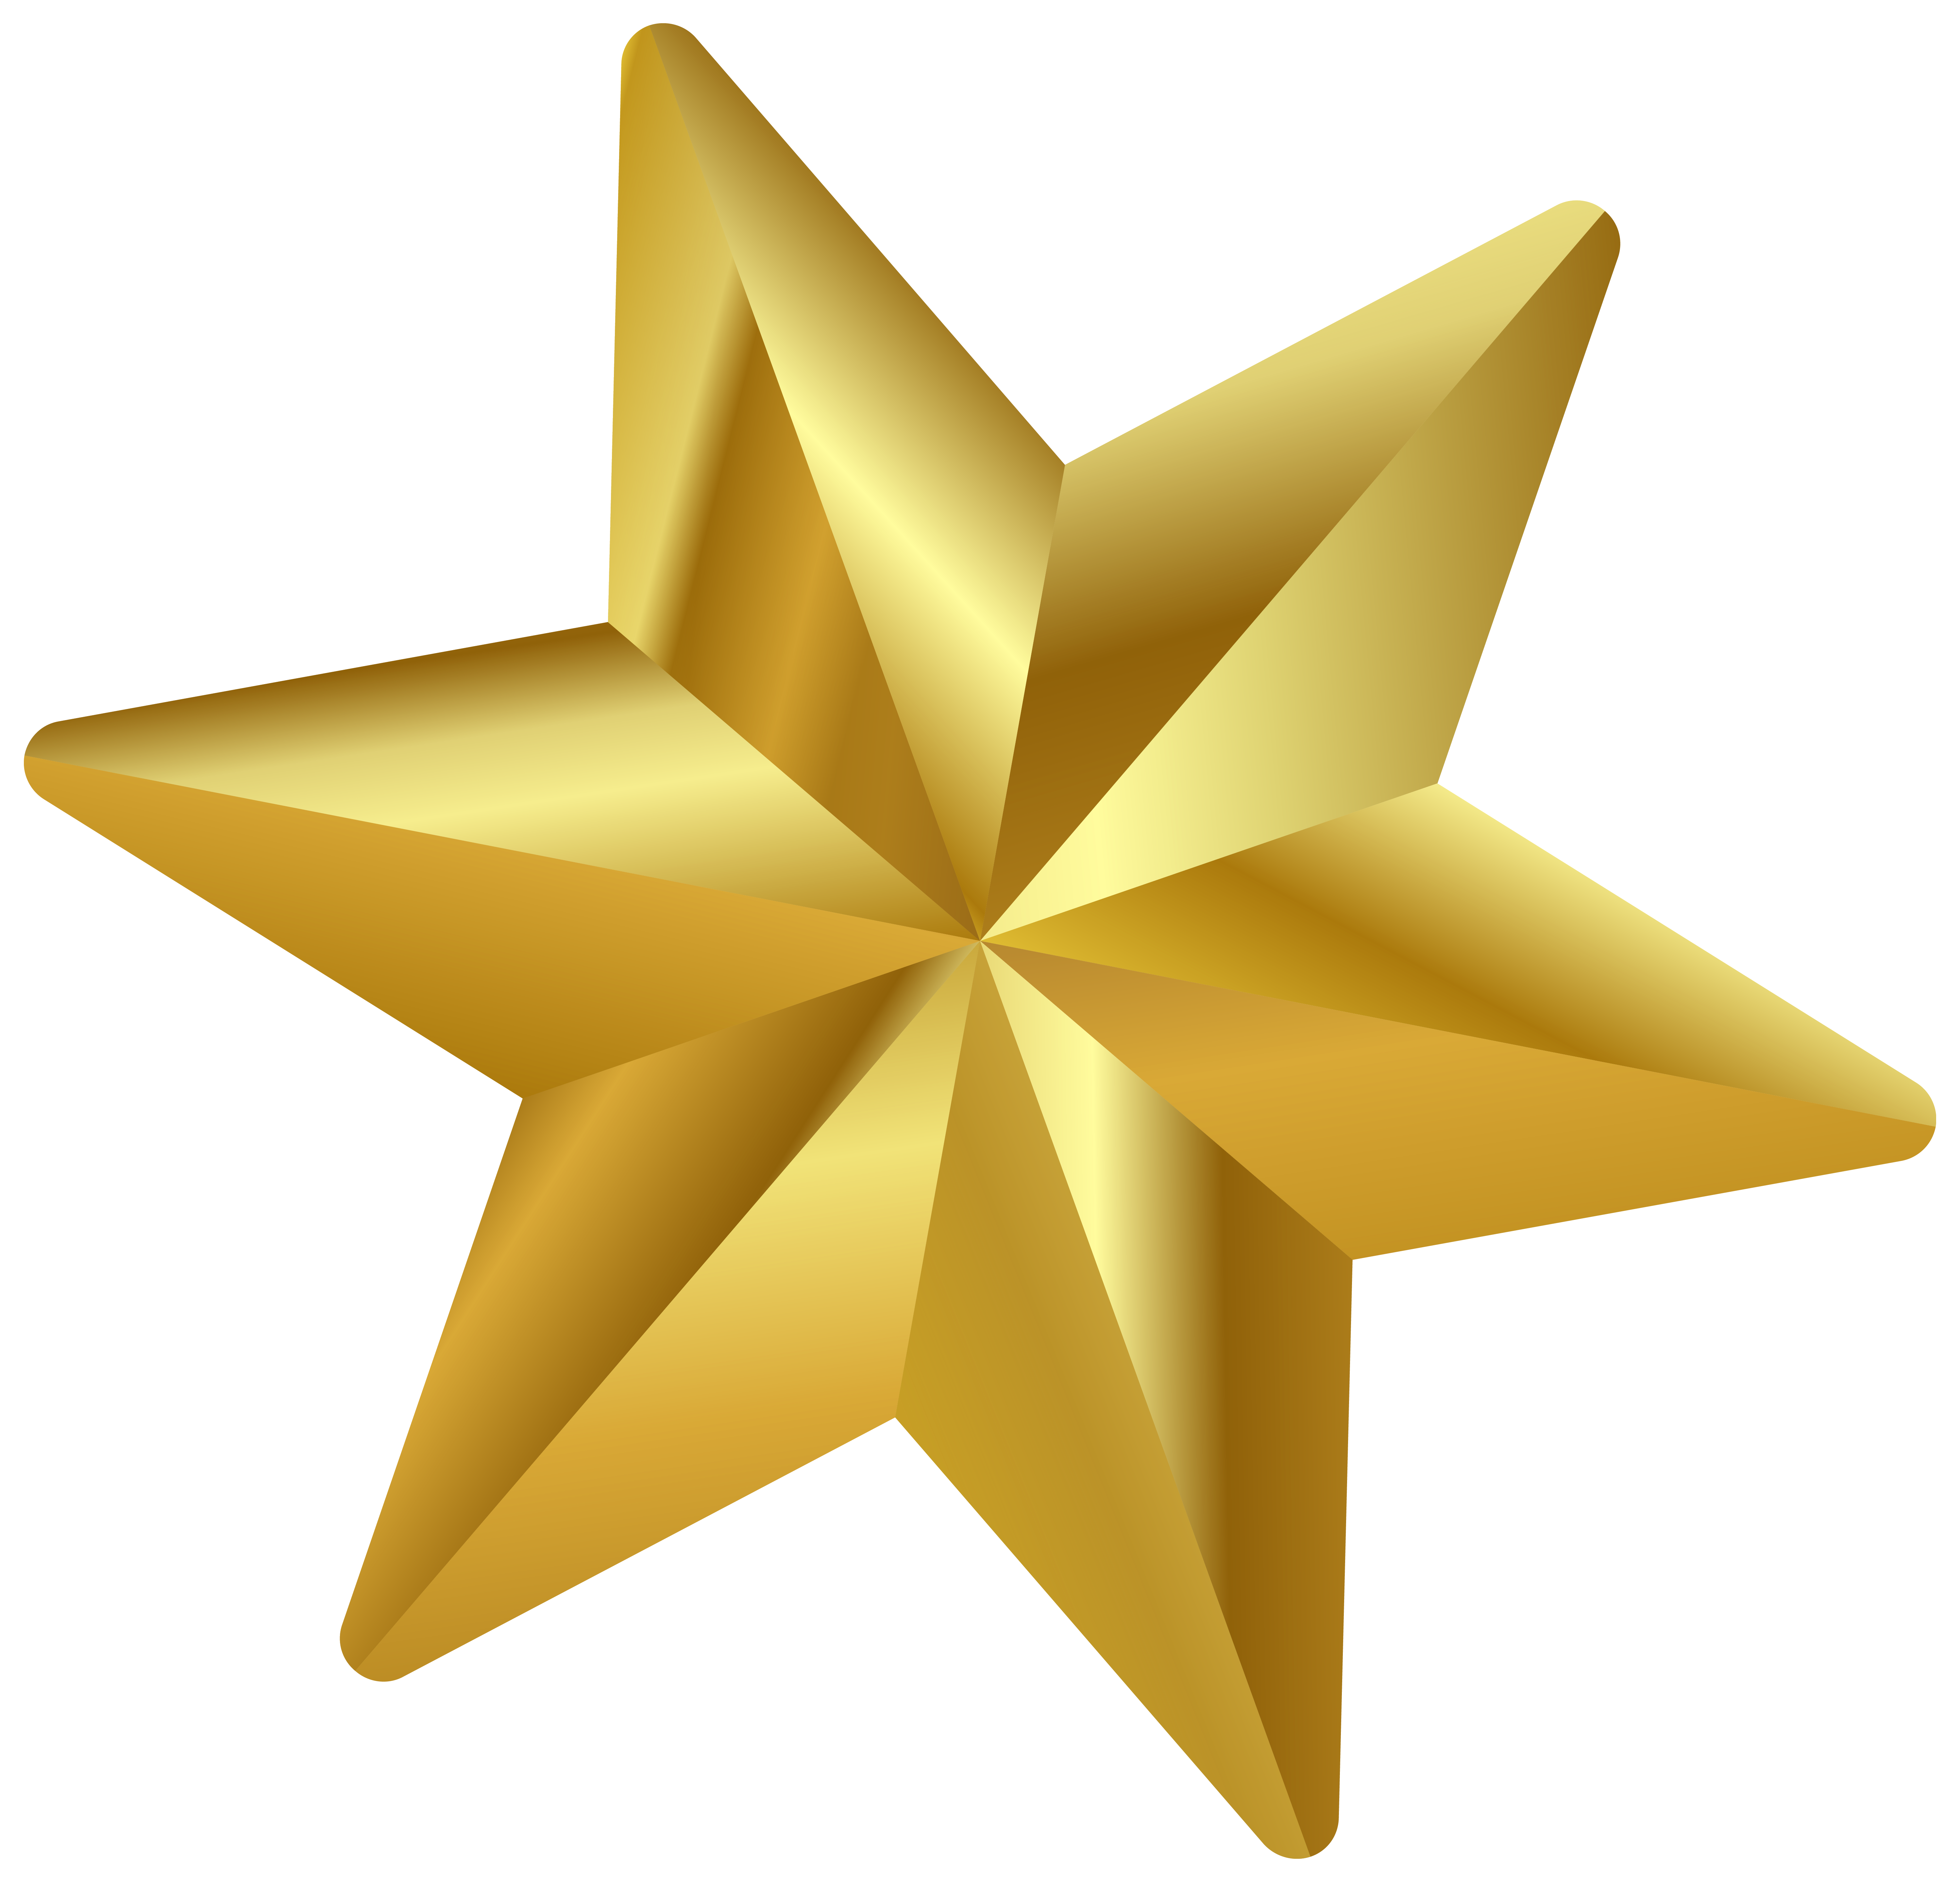 Clipart star christmas clipart free library Free Christmas Stars Cliparts, Download Free Clip Art, Free Clip Art ... clipart free library